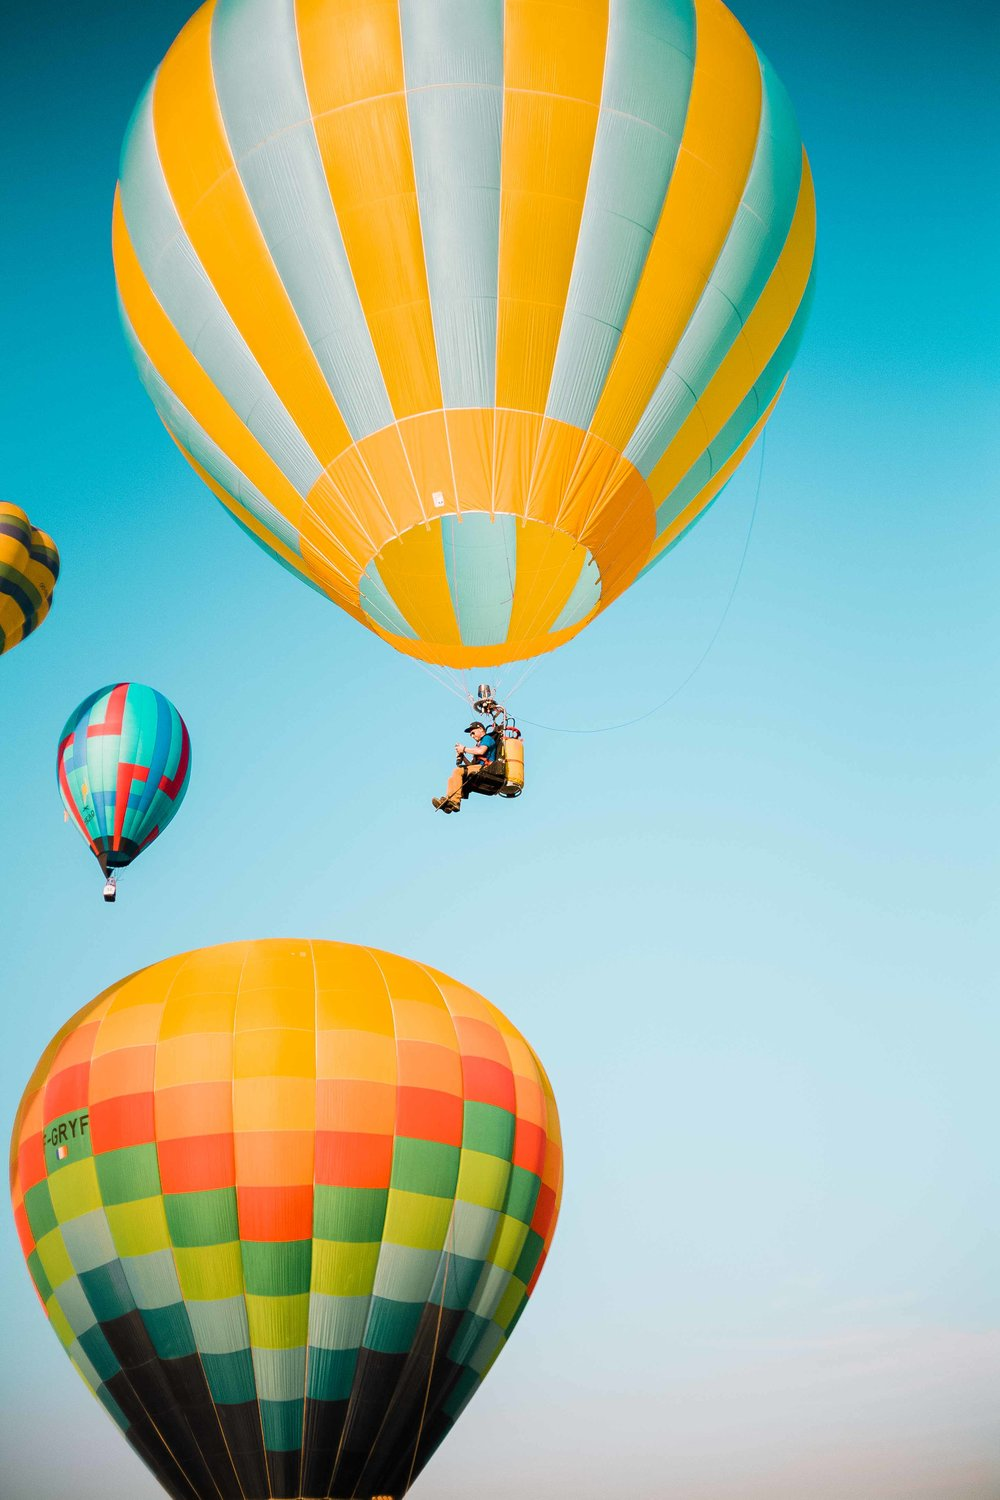 BE WARY OF THE CABLES  When you meet your pilot and his team, they will probably be prepping  the balloons. A high-powered inflation fan will force air into the balloon envelope. Be mindful of the cables and ropes connected to the balloons and the baskets.